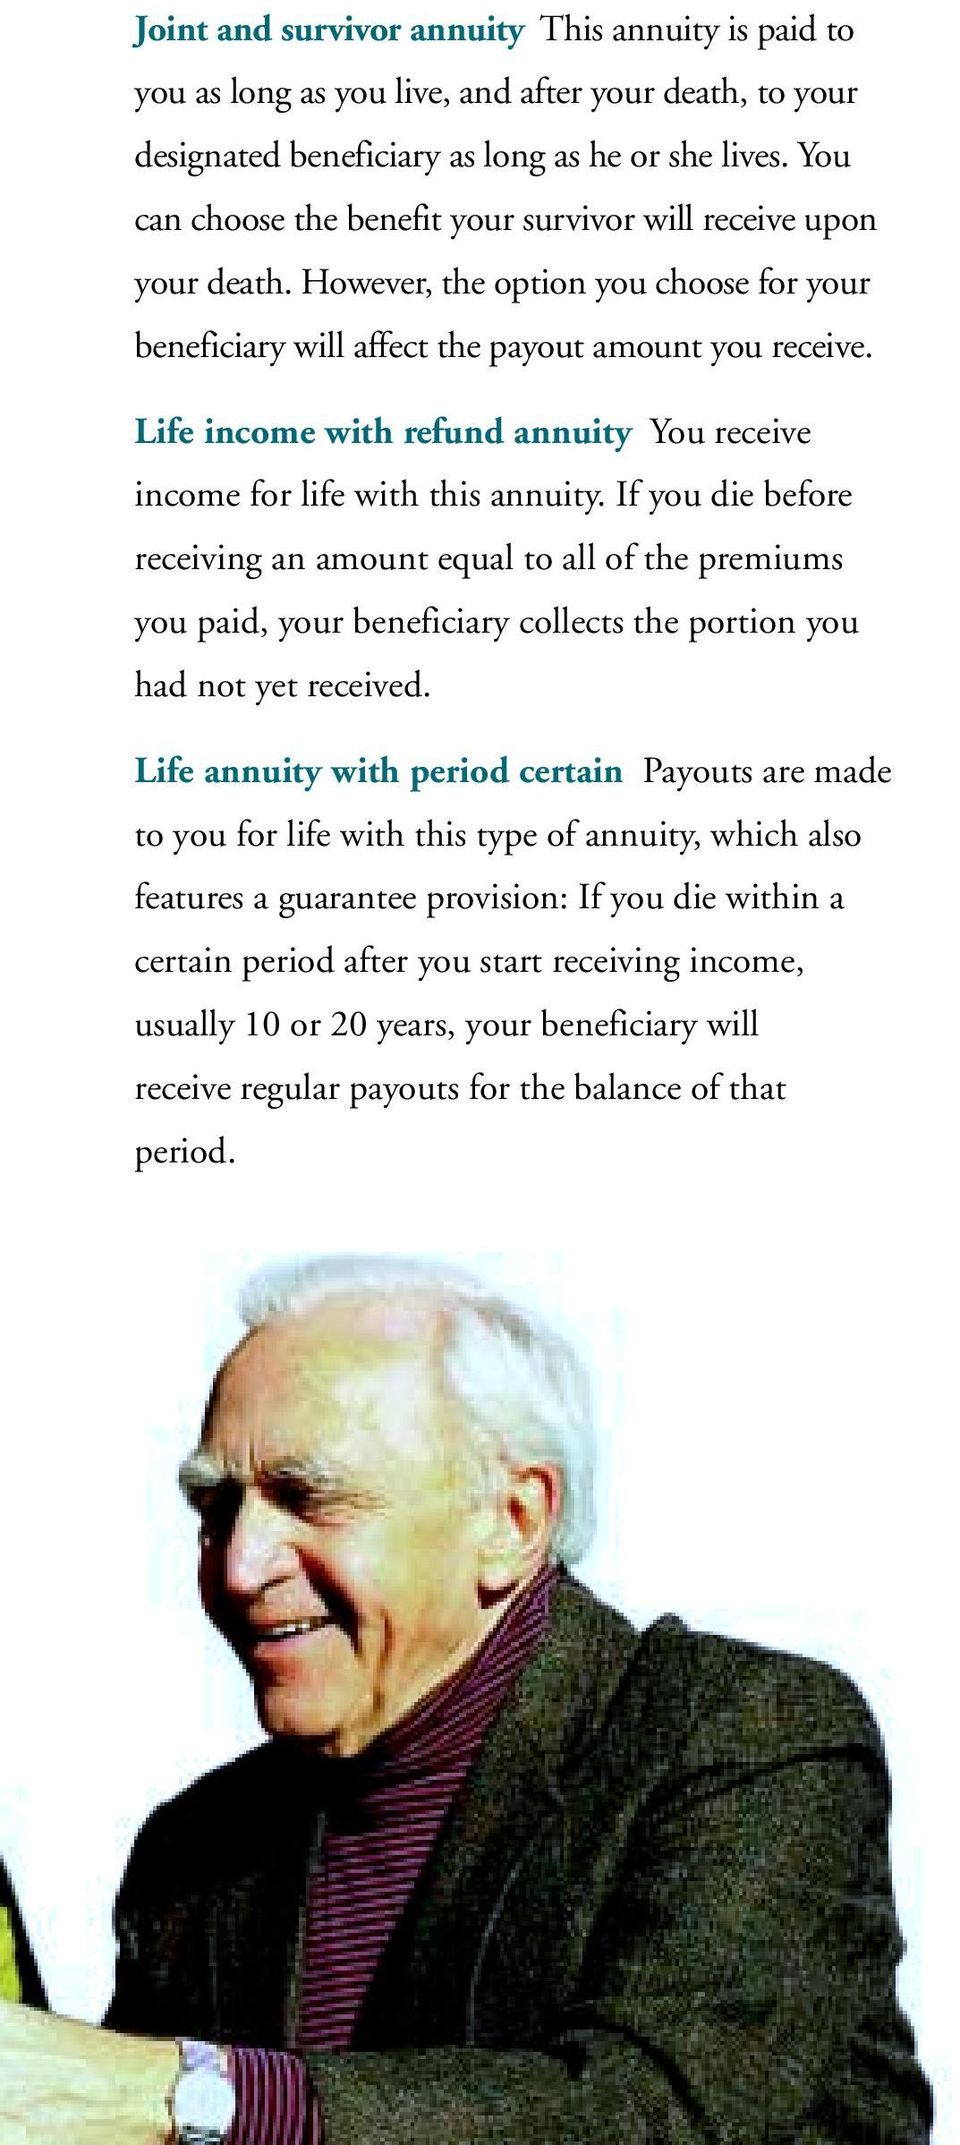 Life income with refund annuity You receive income for life with this annuity.